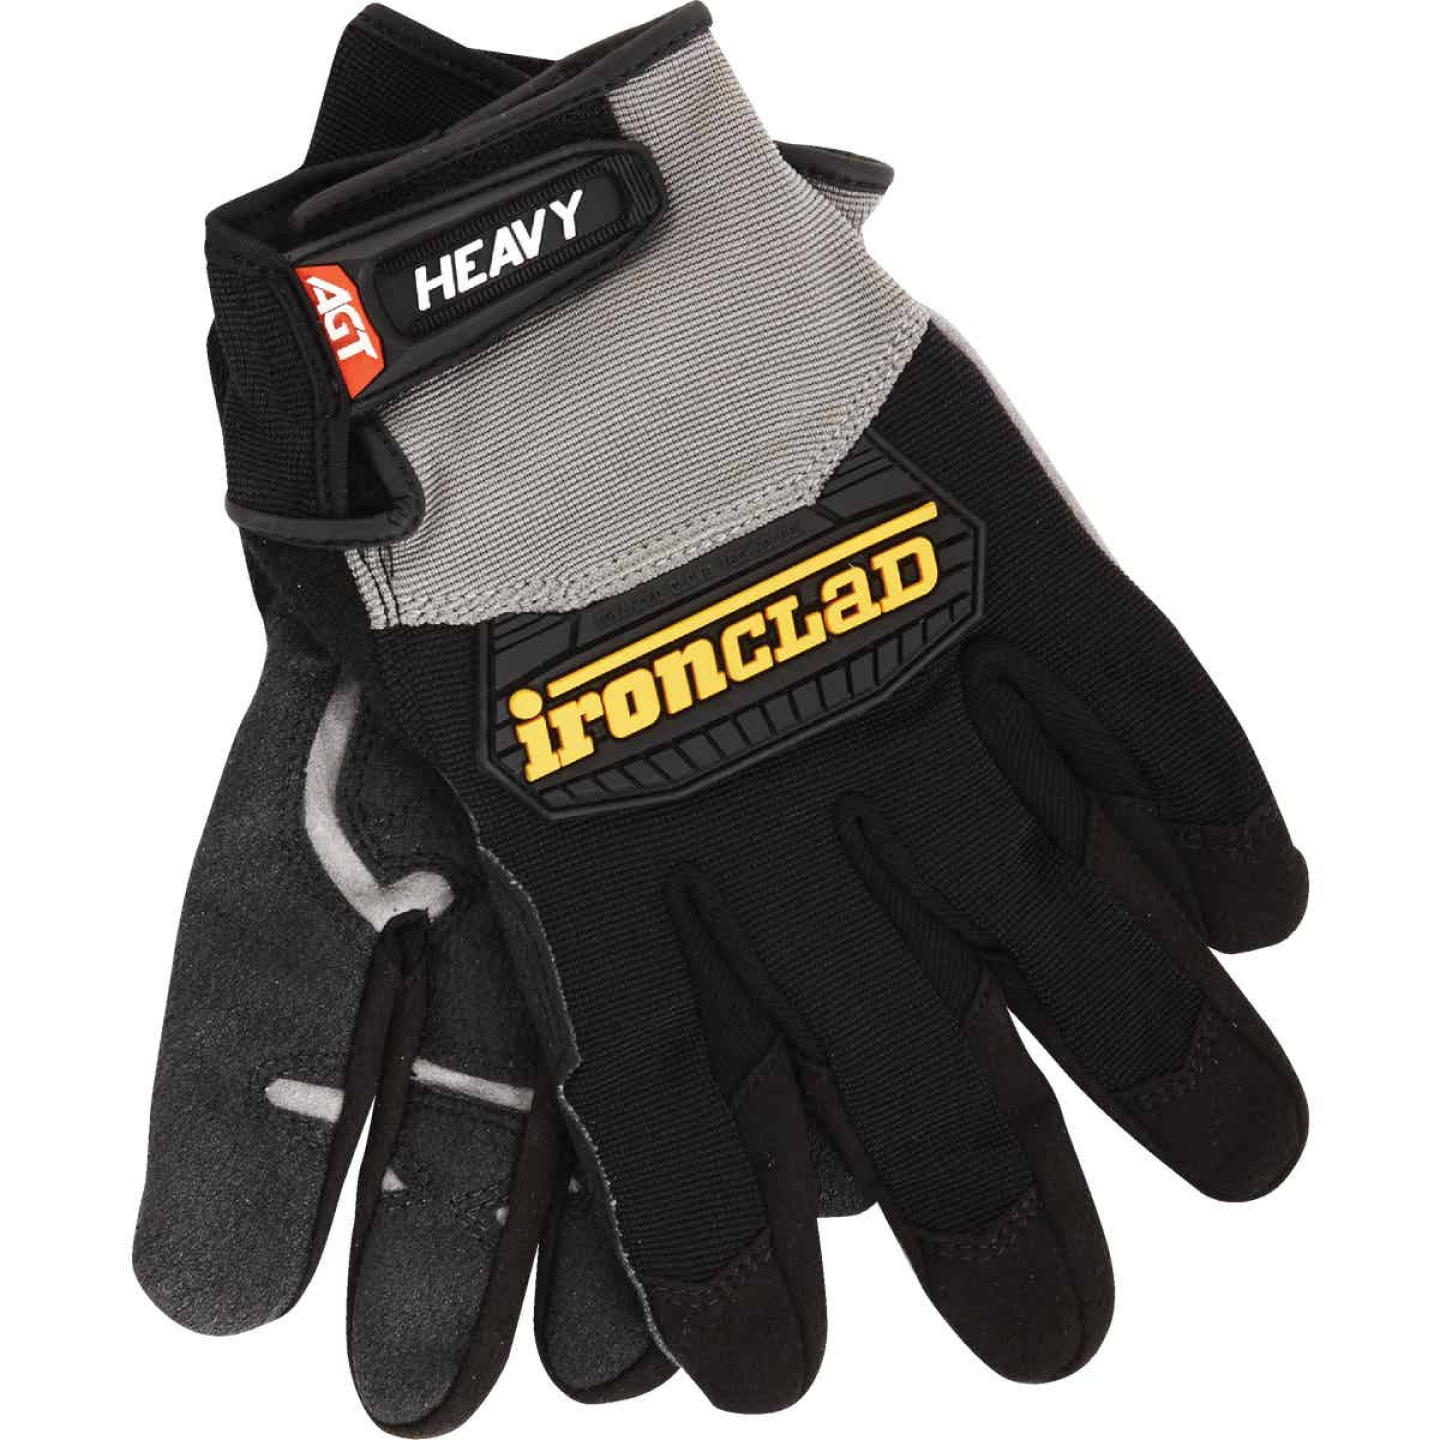 Ironclad Heavy Utility Men's Medium Synthetic Leather High Performance Glove Image 1